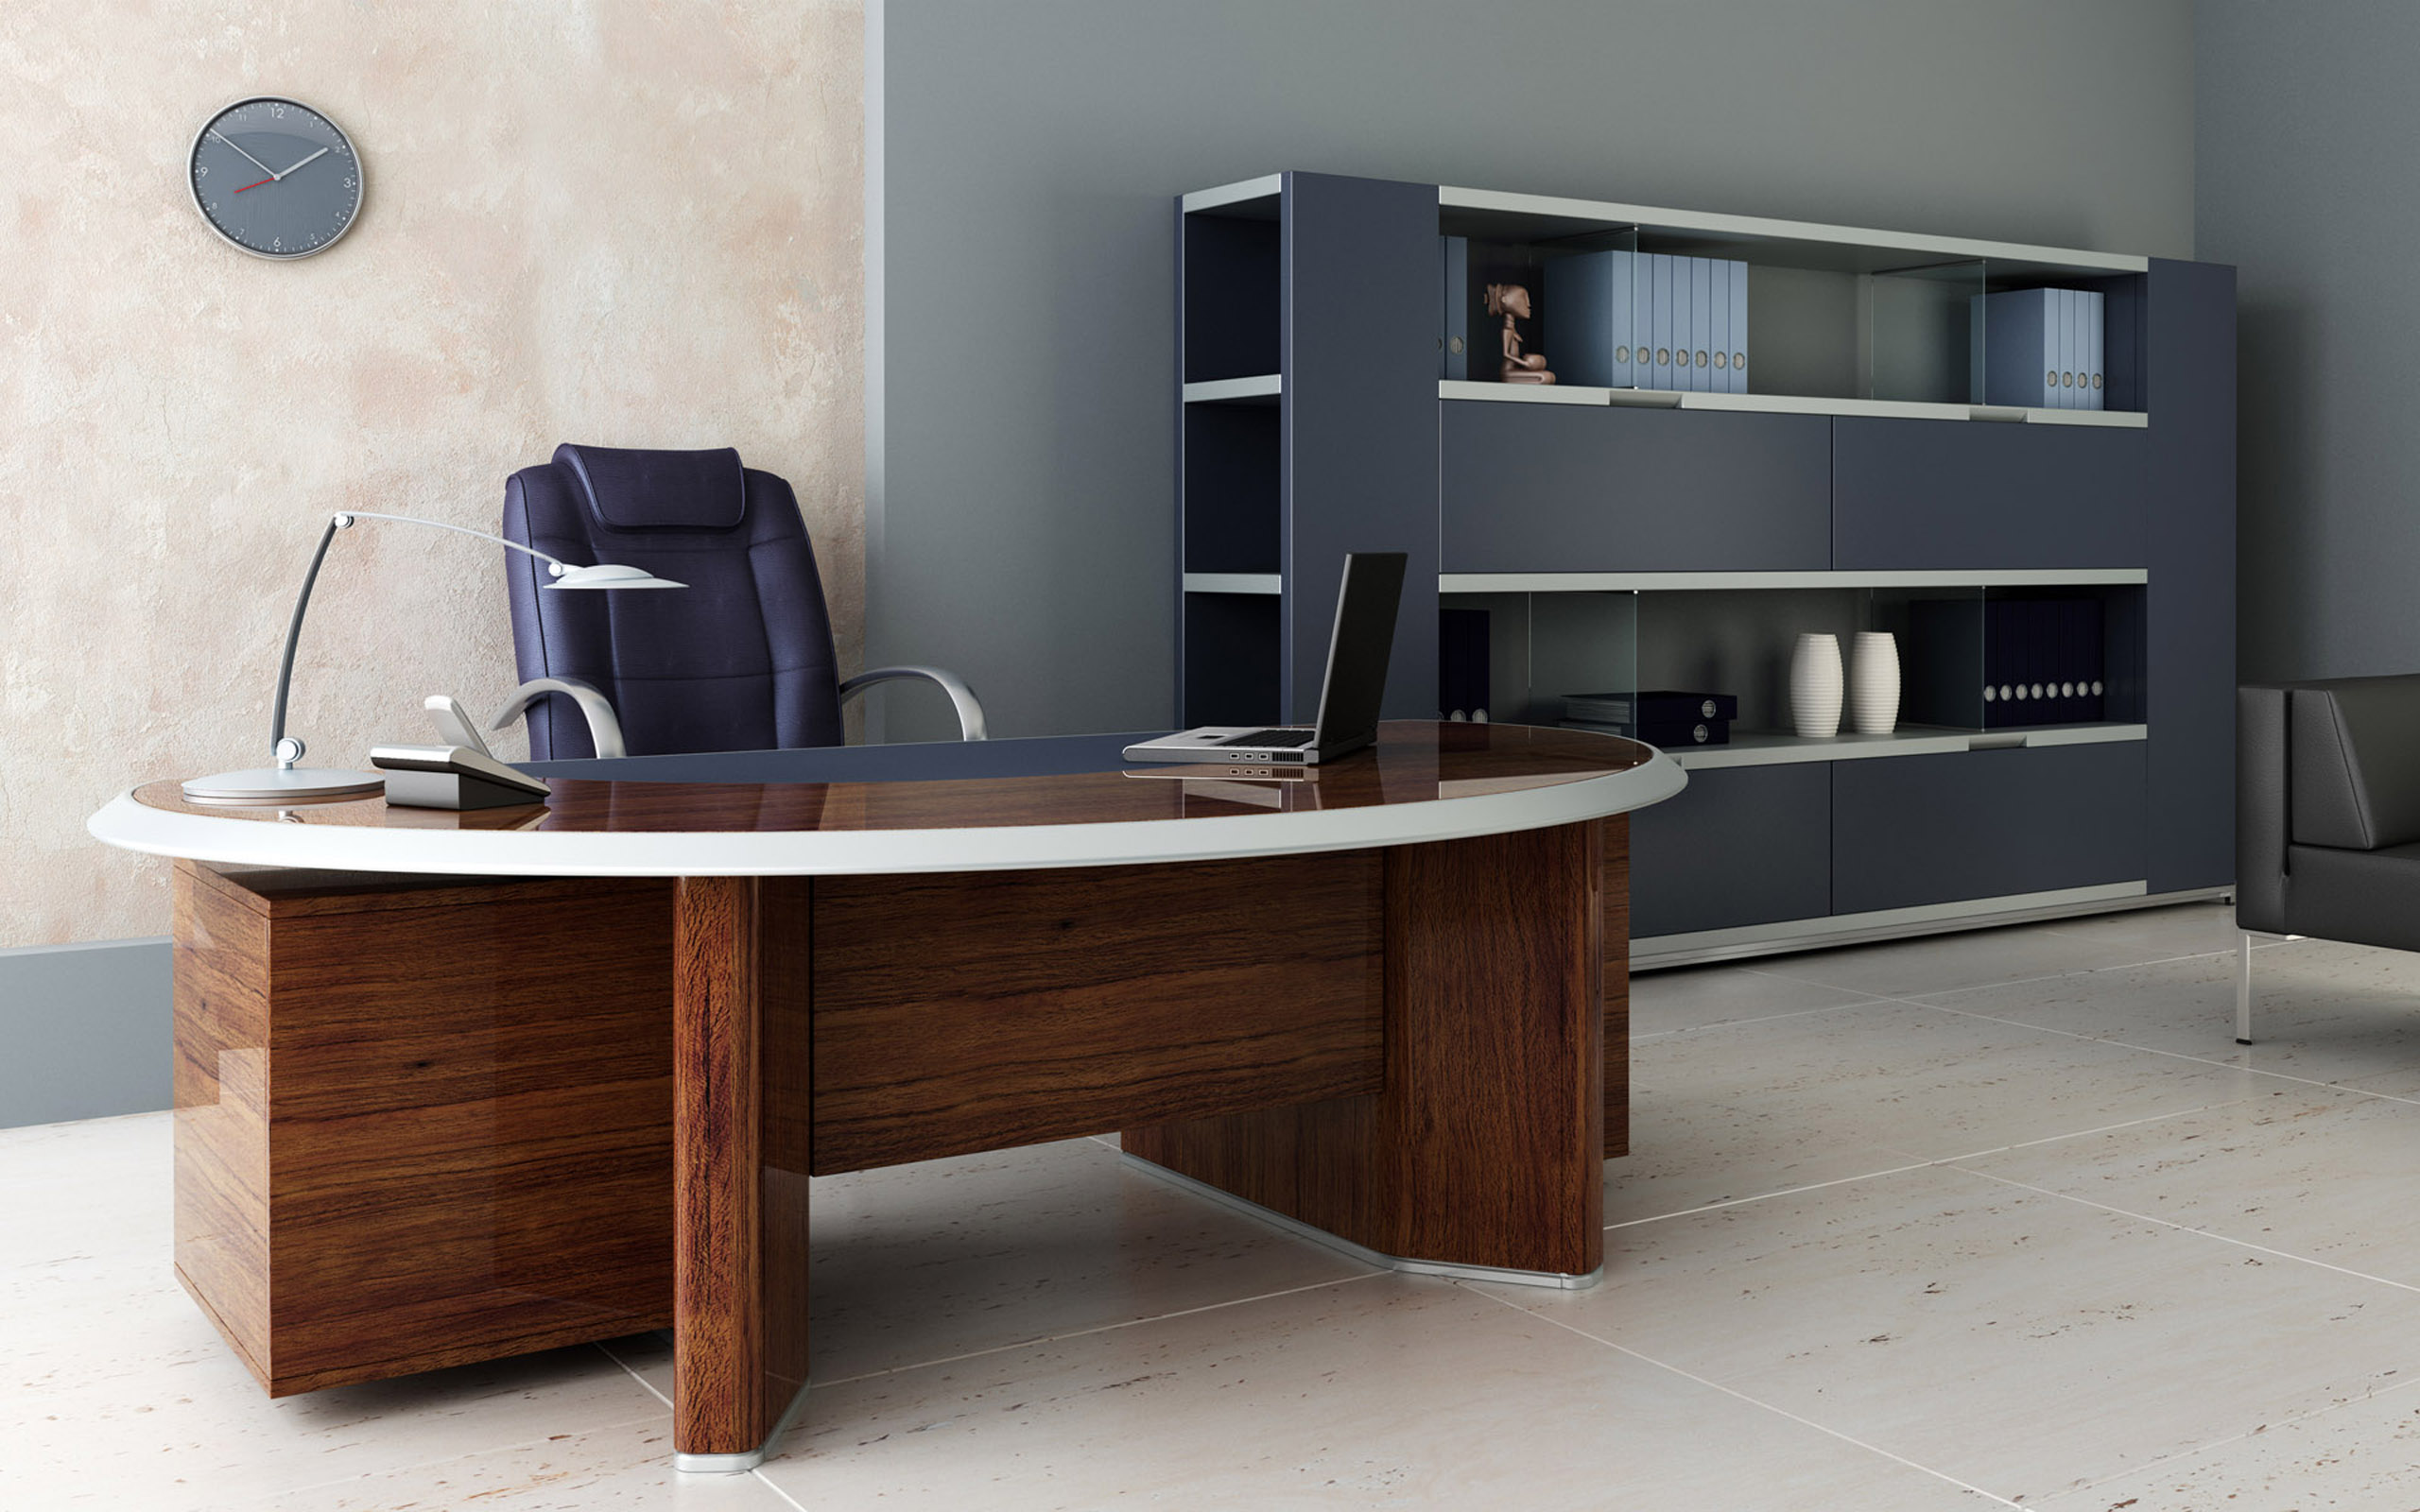 Marvelous Design Of The Brown Wooden Desk With White Tops Ideas Added With White Floor For The Office Home Areas Ideas